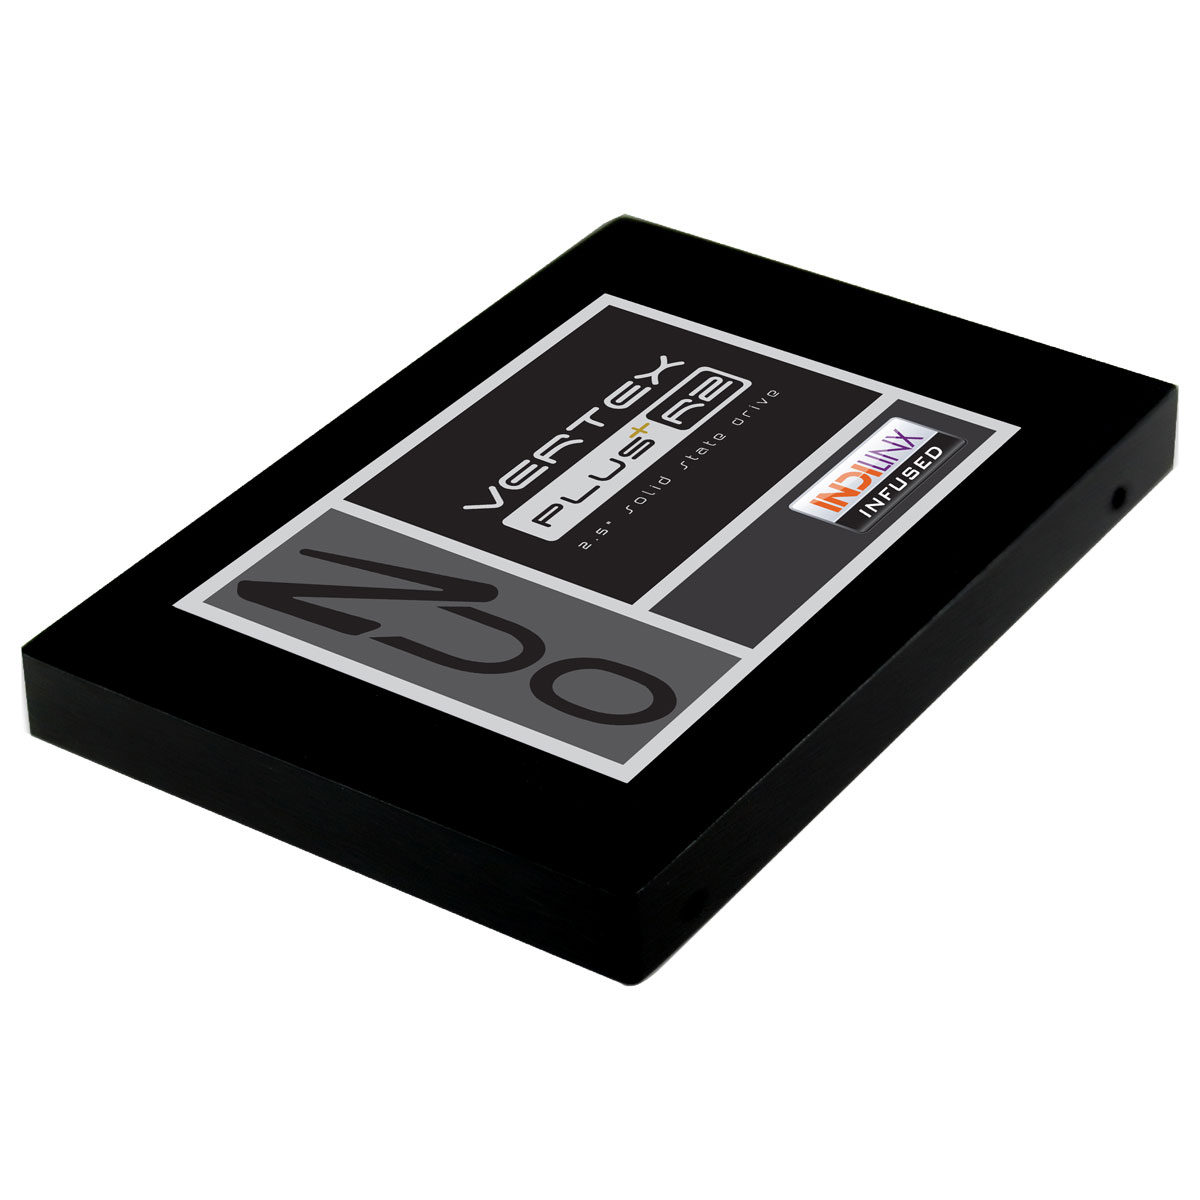 ocz vertex plus r2 series 120 go disque ssd ocz storage solutions sur. Black Bedroom Furniture Sets. Home Design Ideas